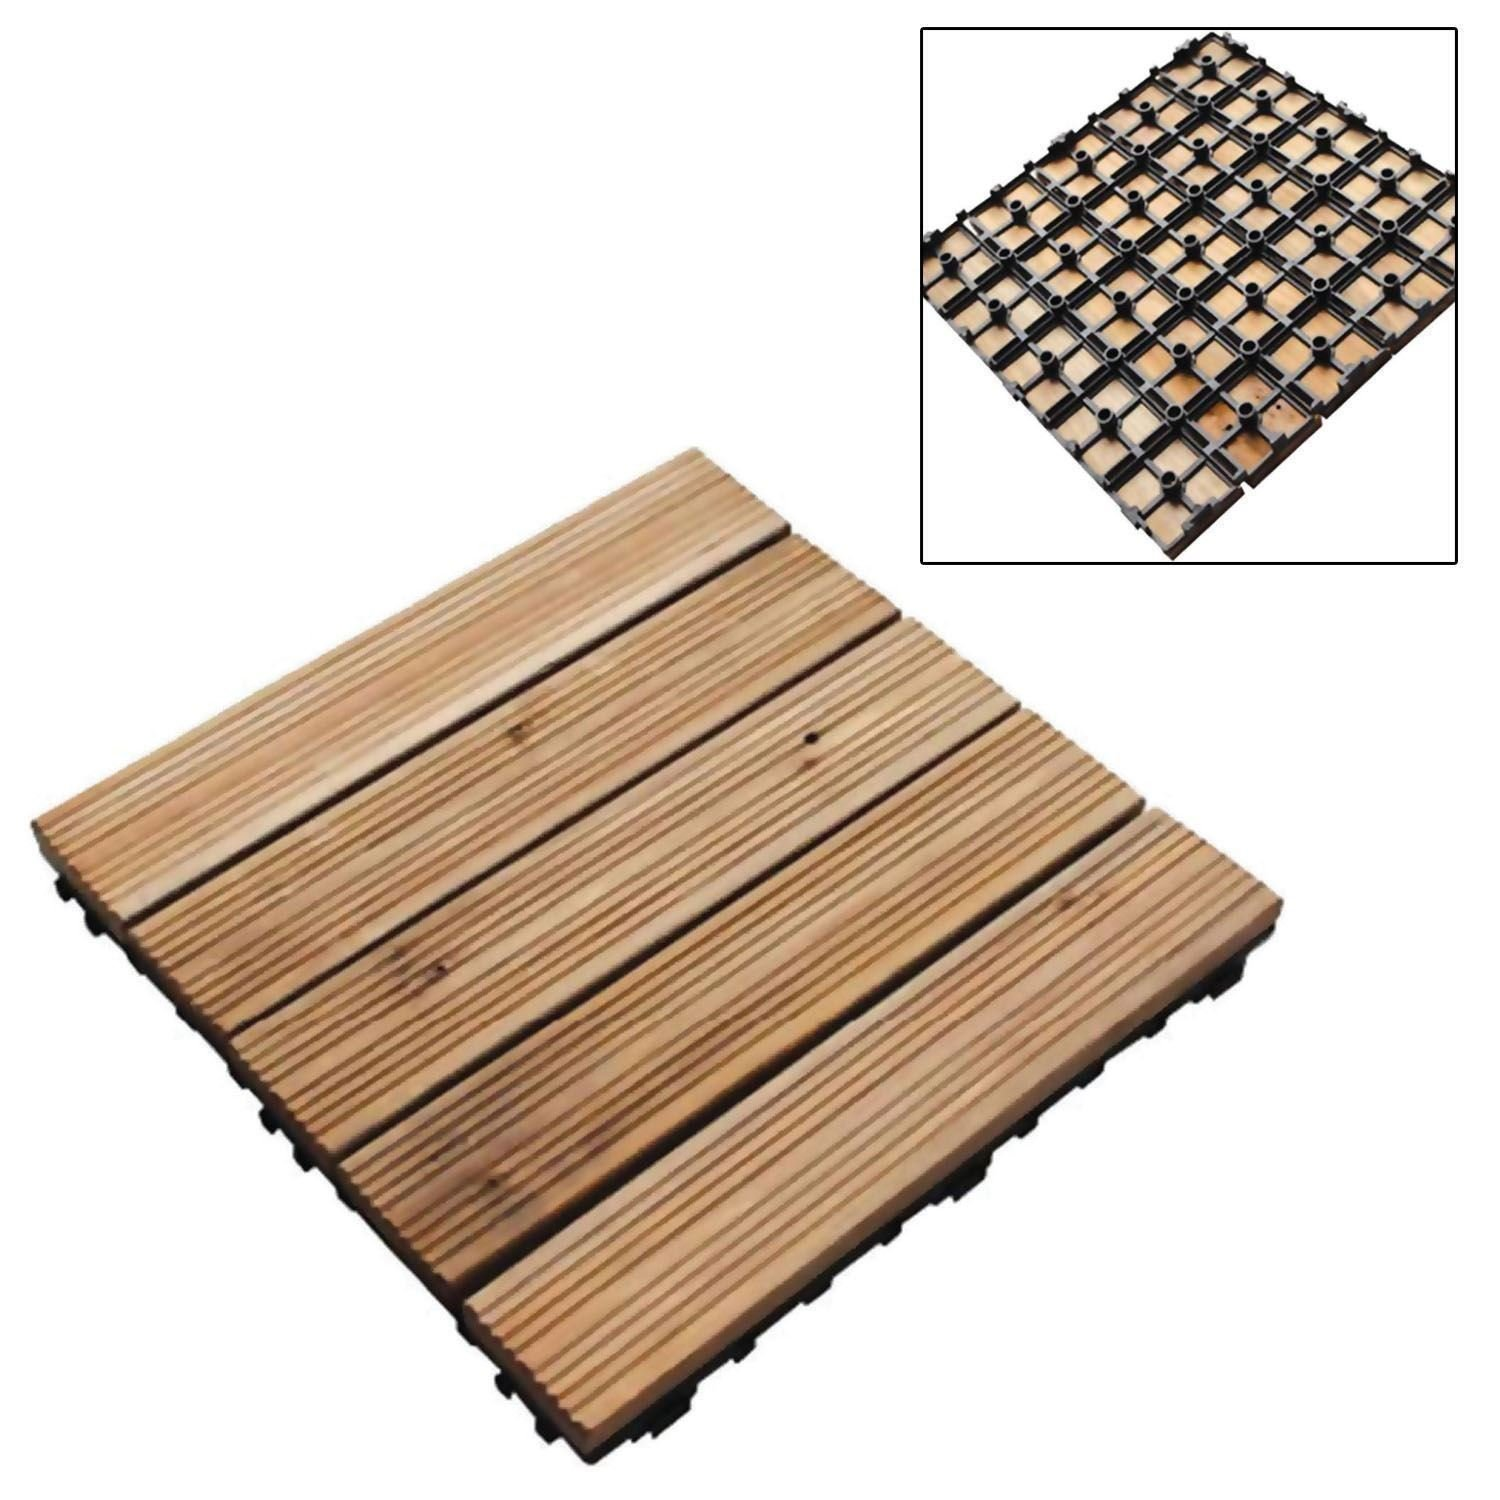 18 x wooden decking floor tiles garden decks slab 30cm sq deck tile amazoncouk kitchen u0026 home